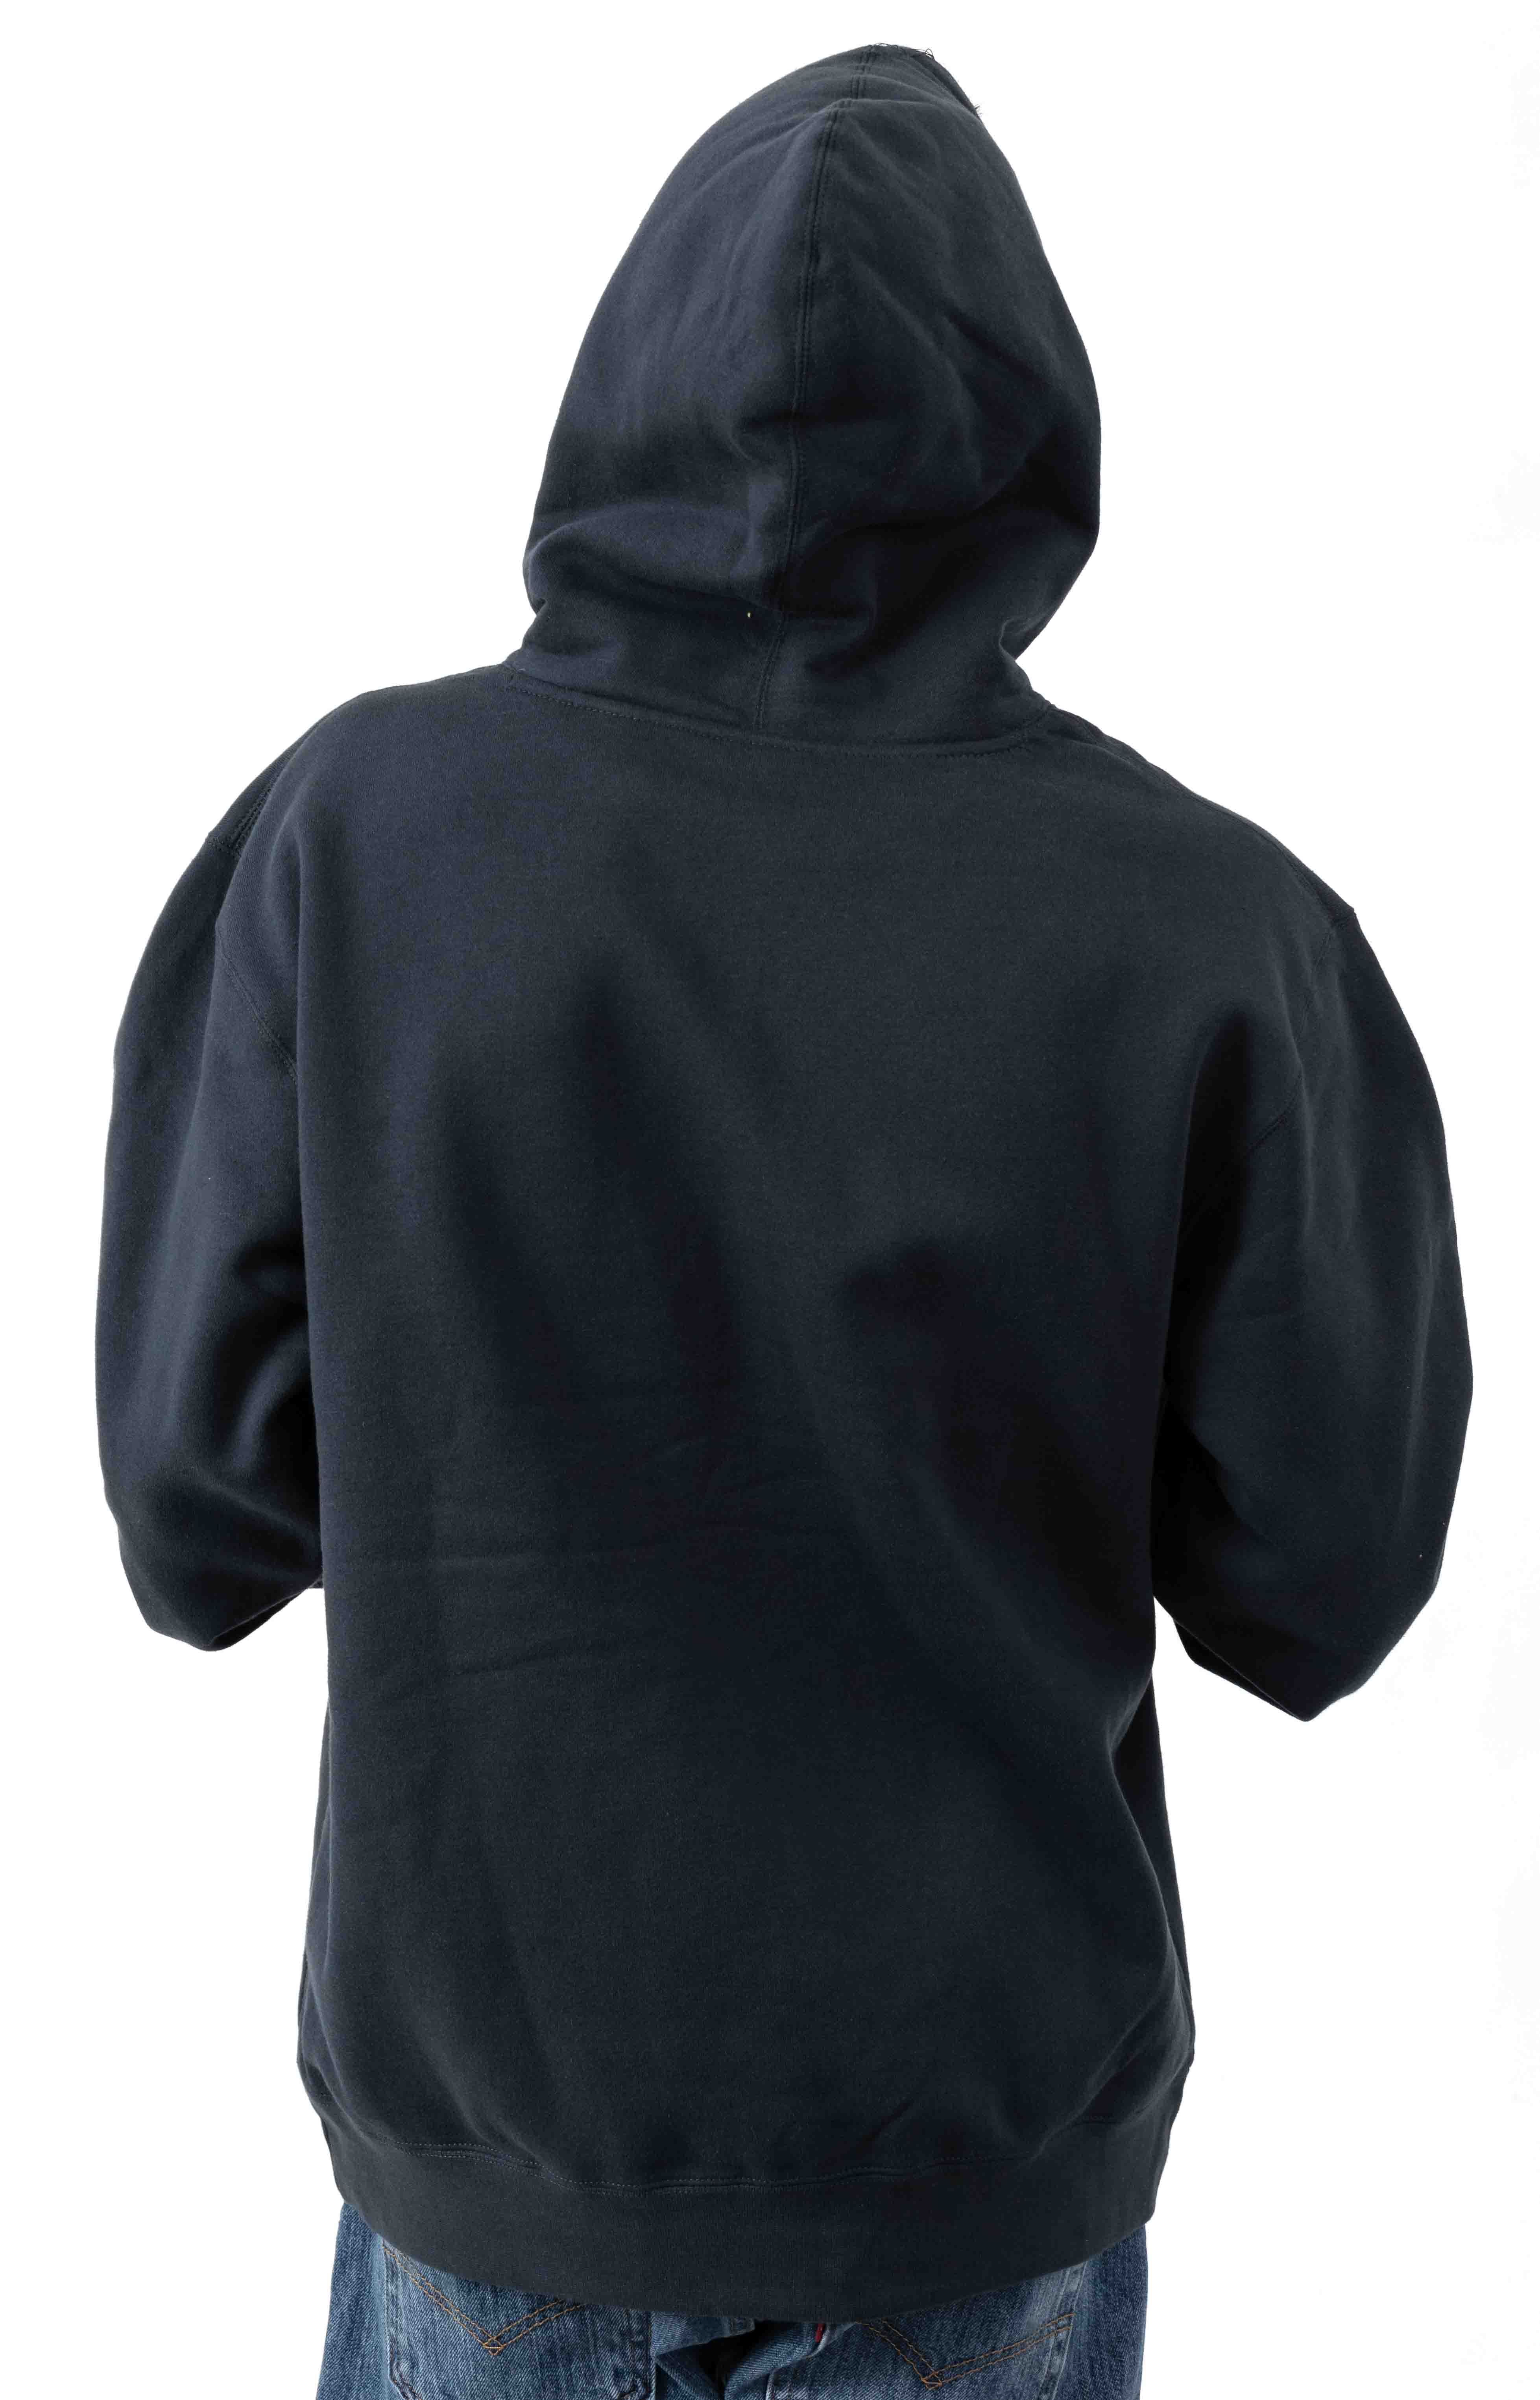 Exclamation Point Pullover Hoodie - Slate Blue 3